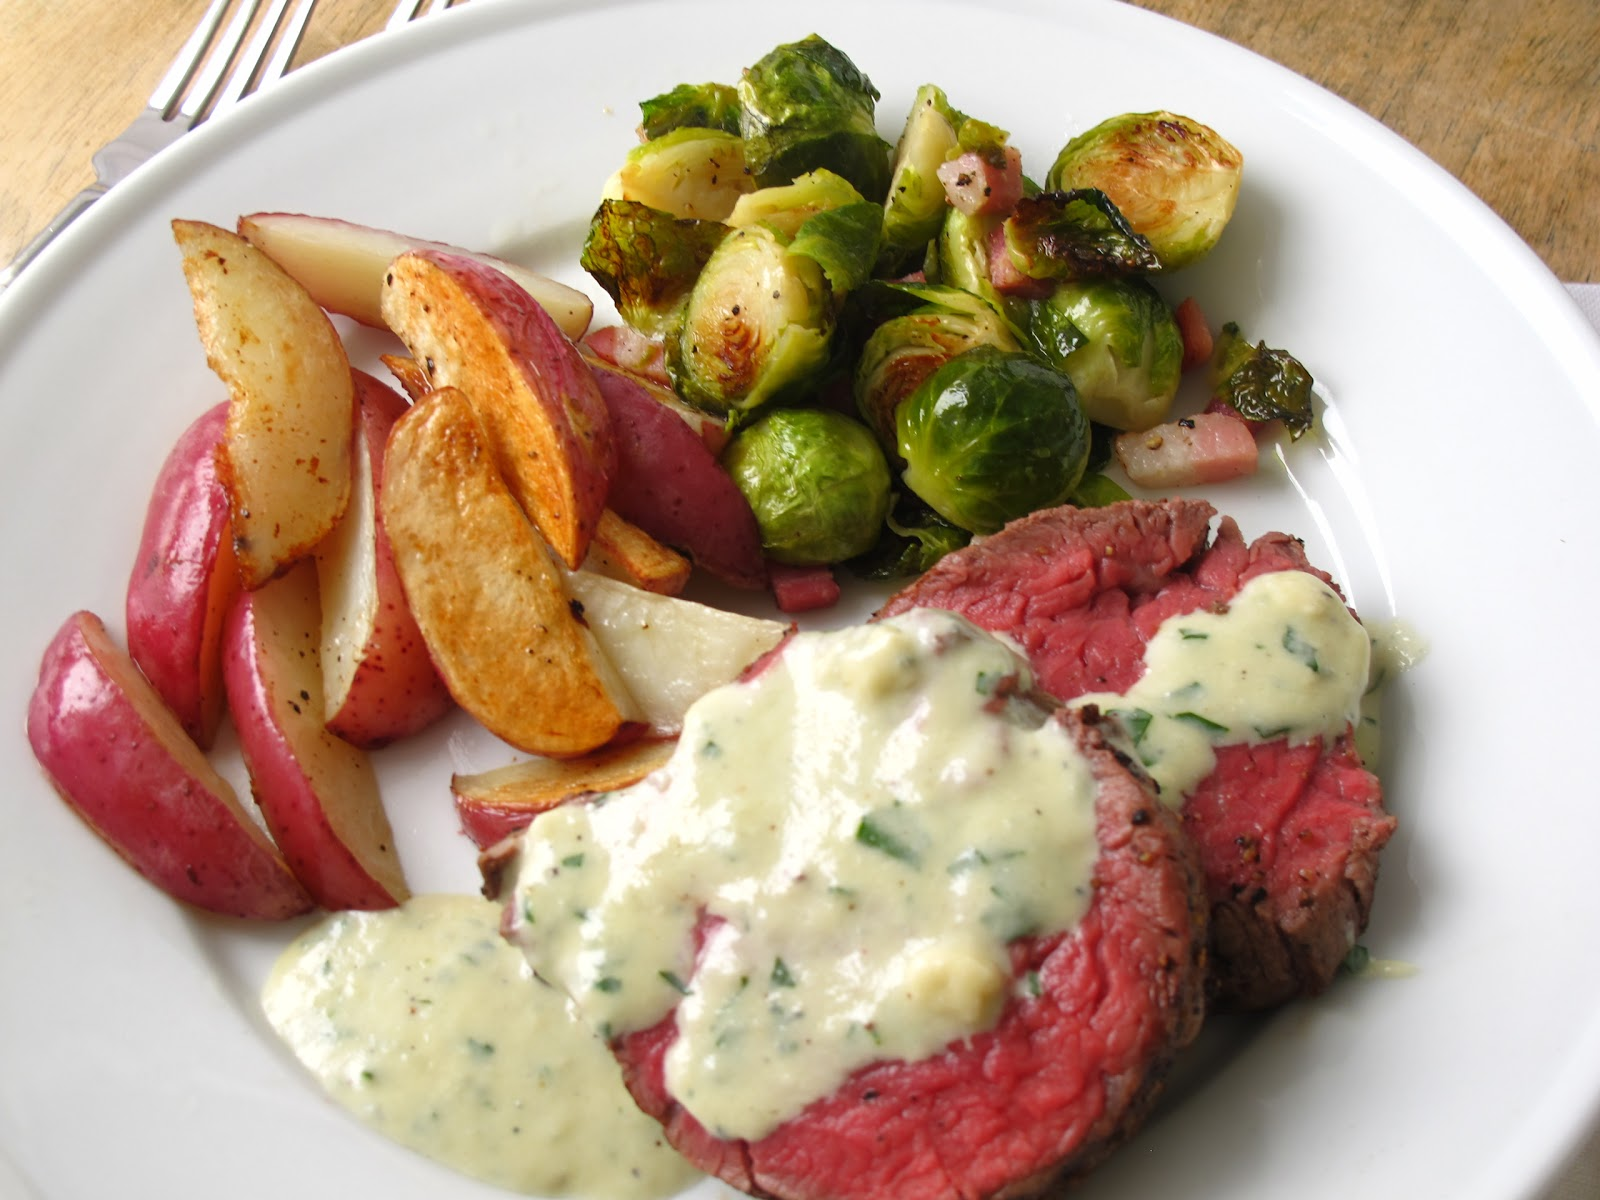 Jenny steffens hobick beef tenderloin recipe for holiday for Canape ideas for dinner party